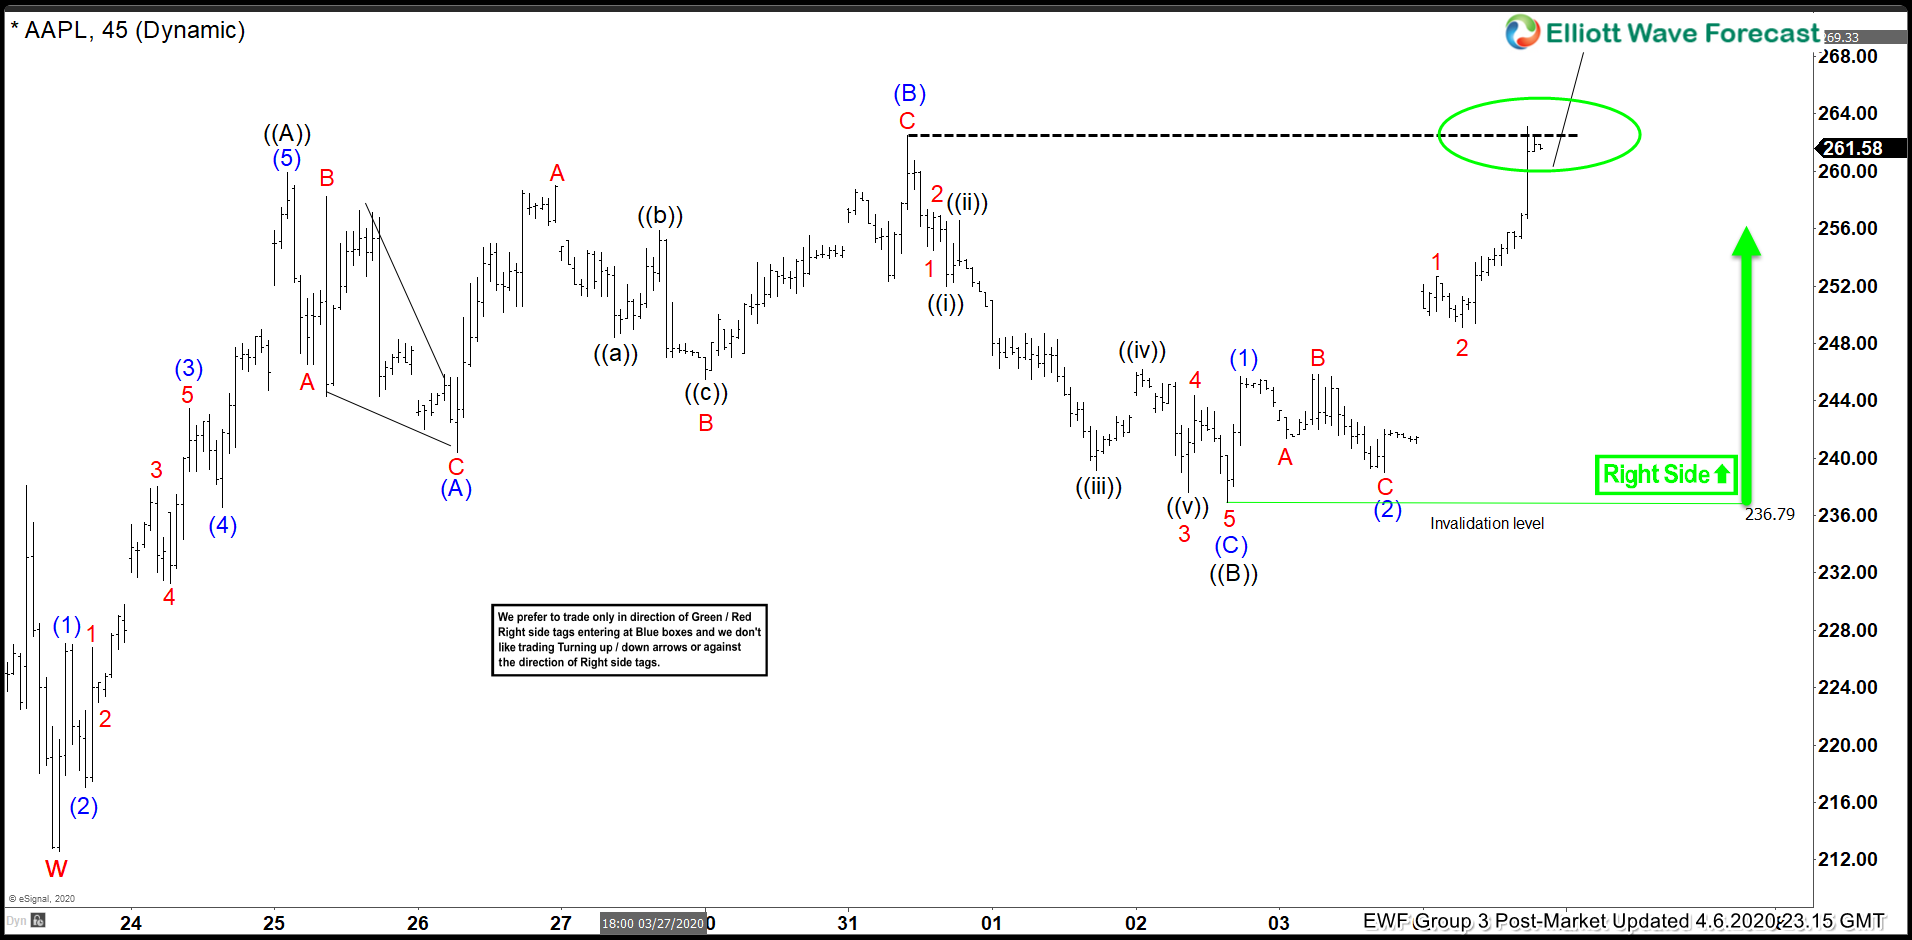 Apple ( $AAPL) Elliott Wave: Forecasting The Path